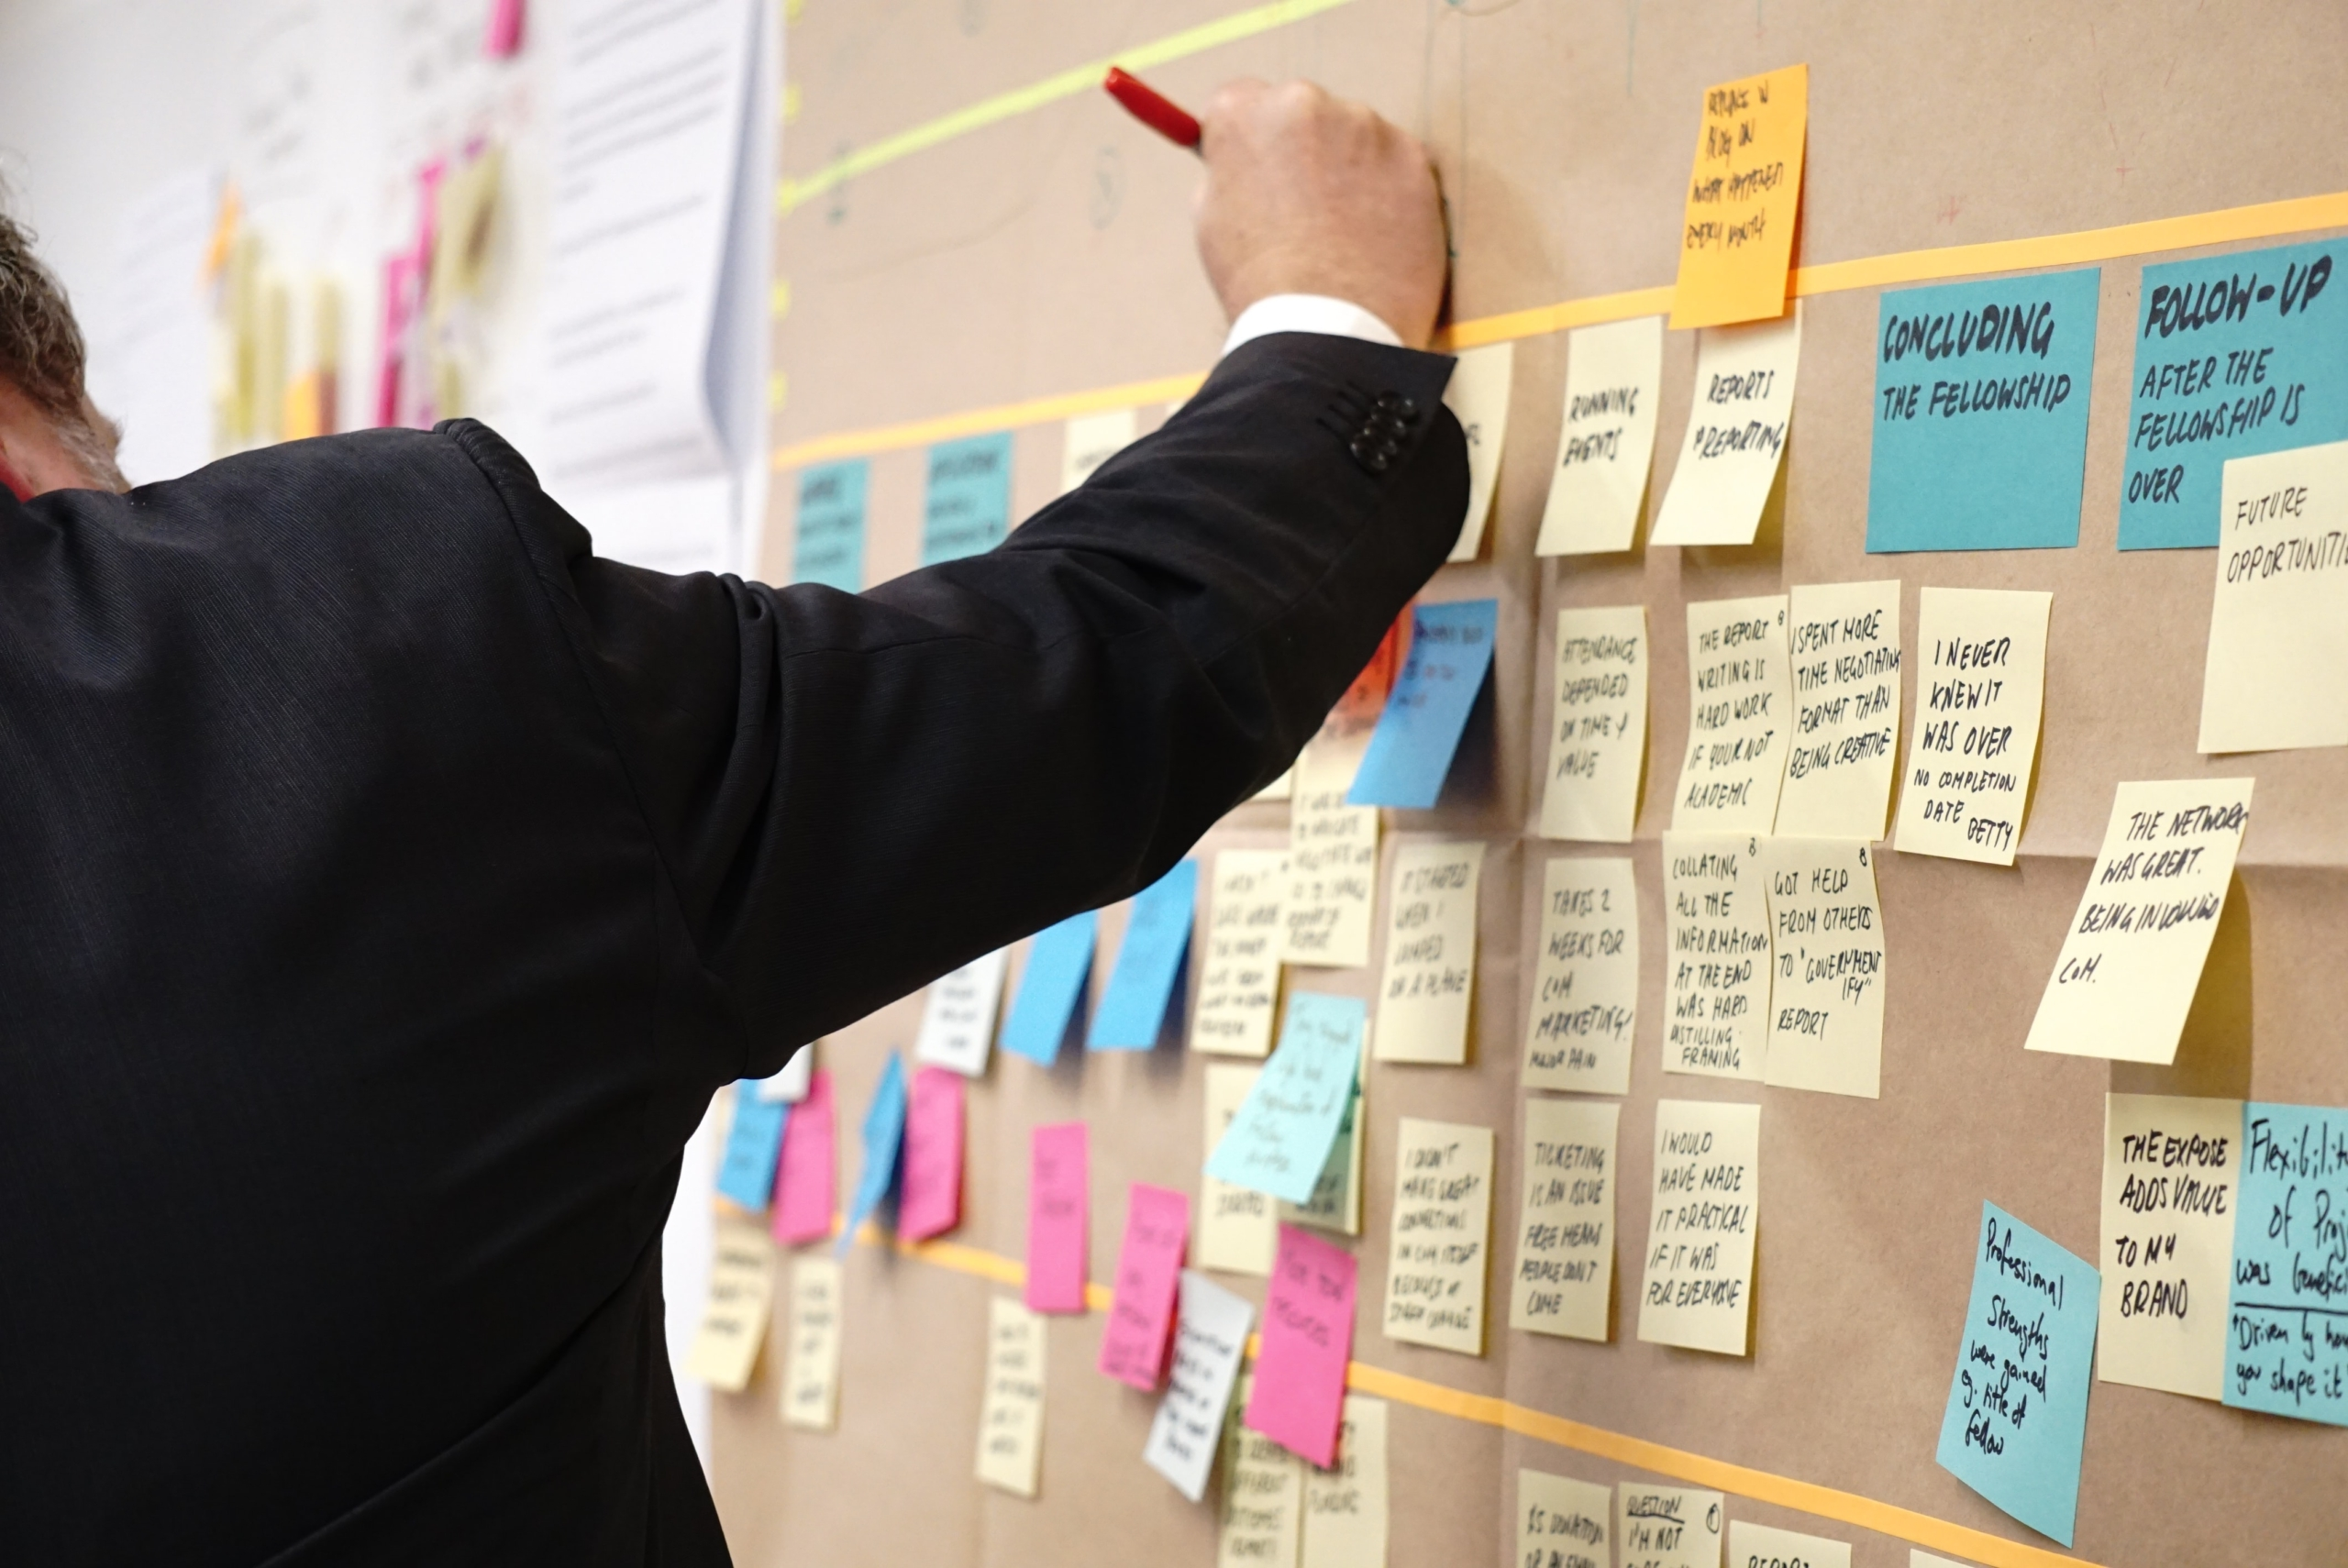 A man in a business suit writing on post it notes scattered across a board on the wall. The post it notes are scribbled on and are organized into groupings of different colors.